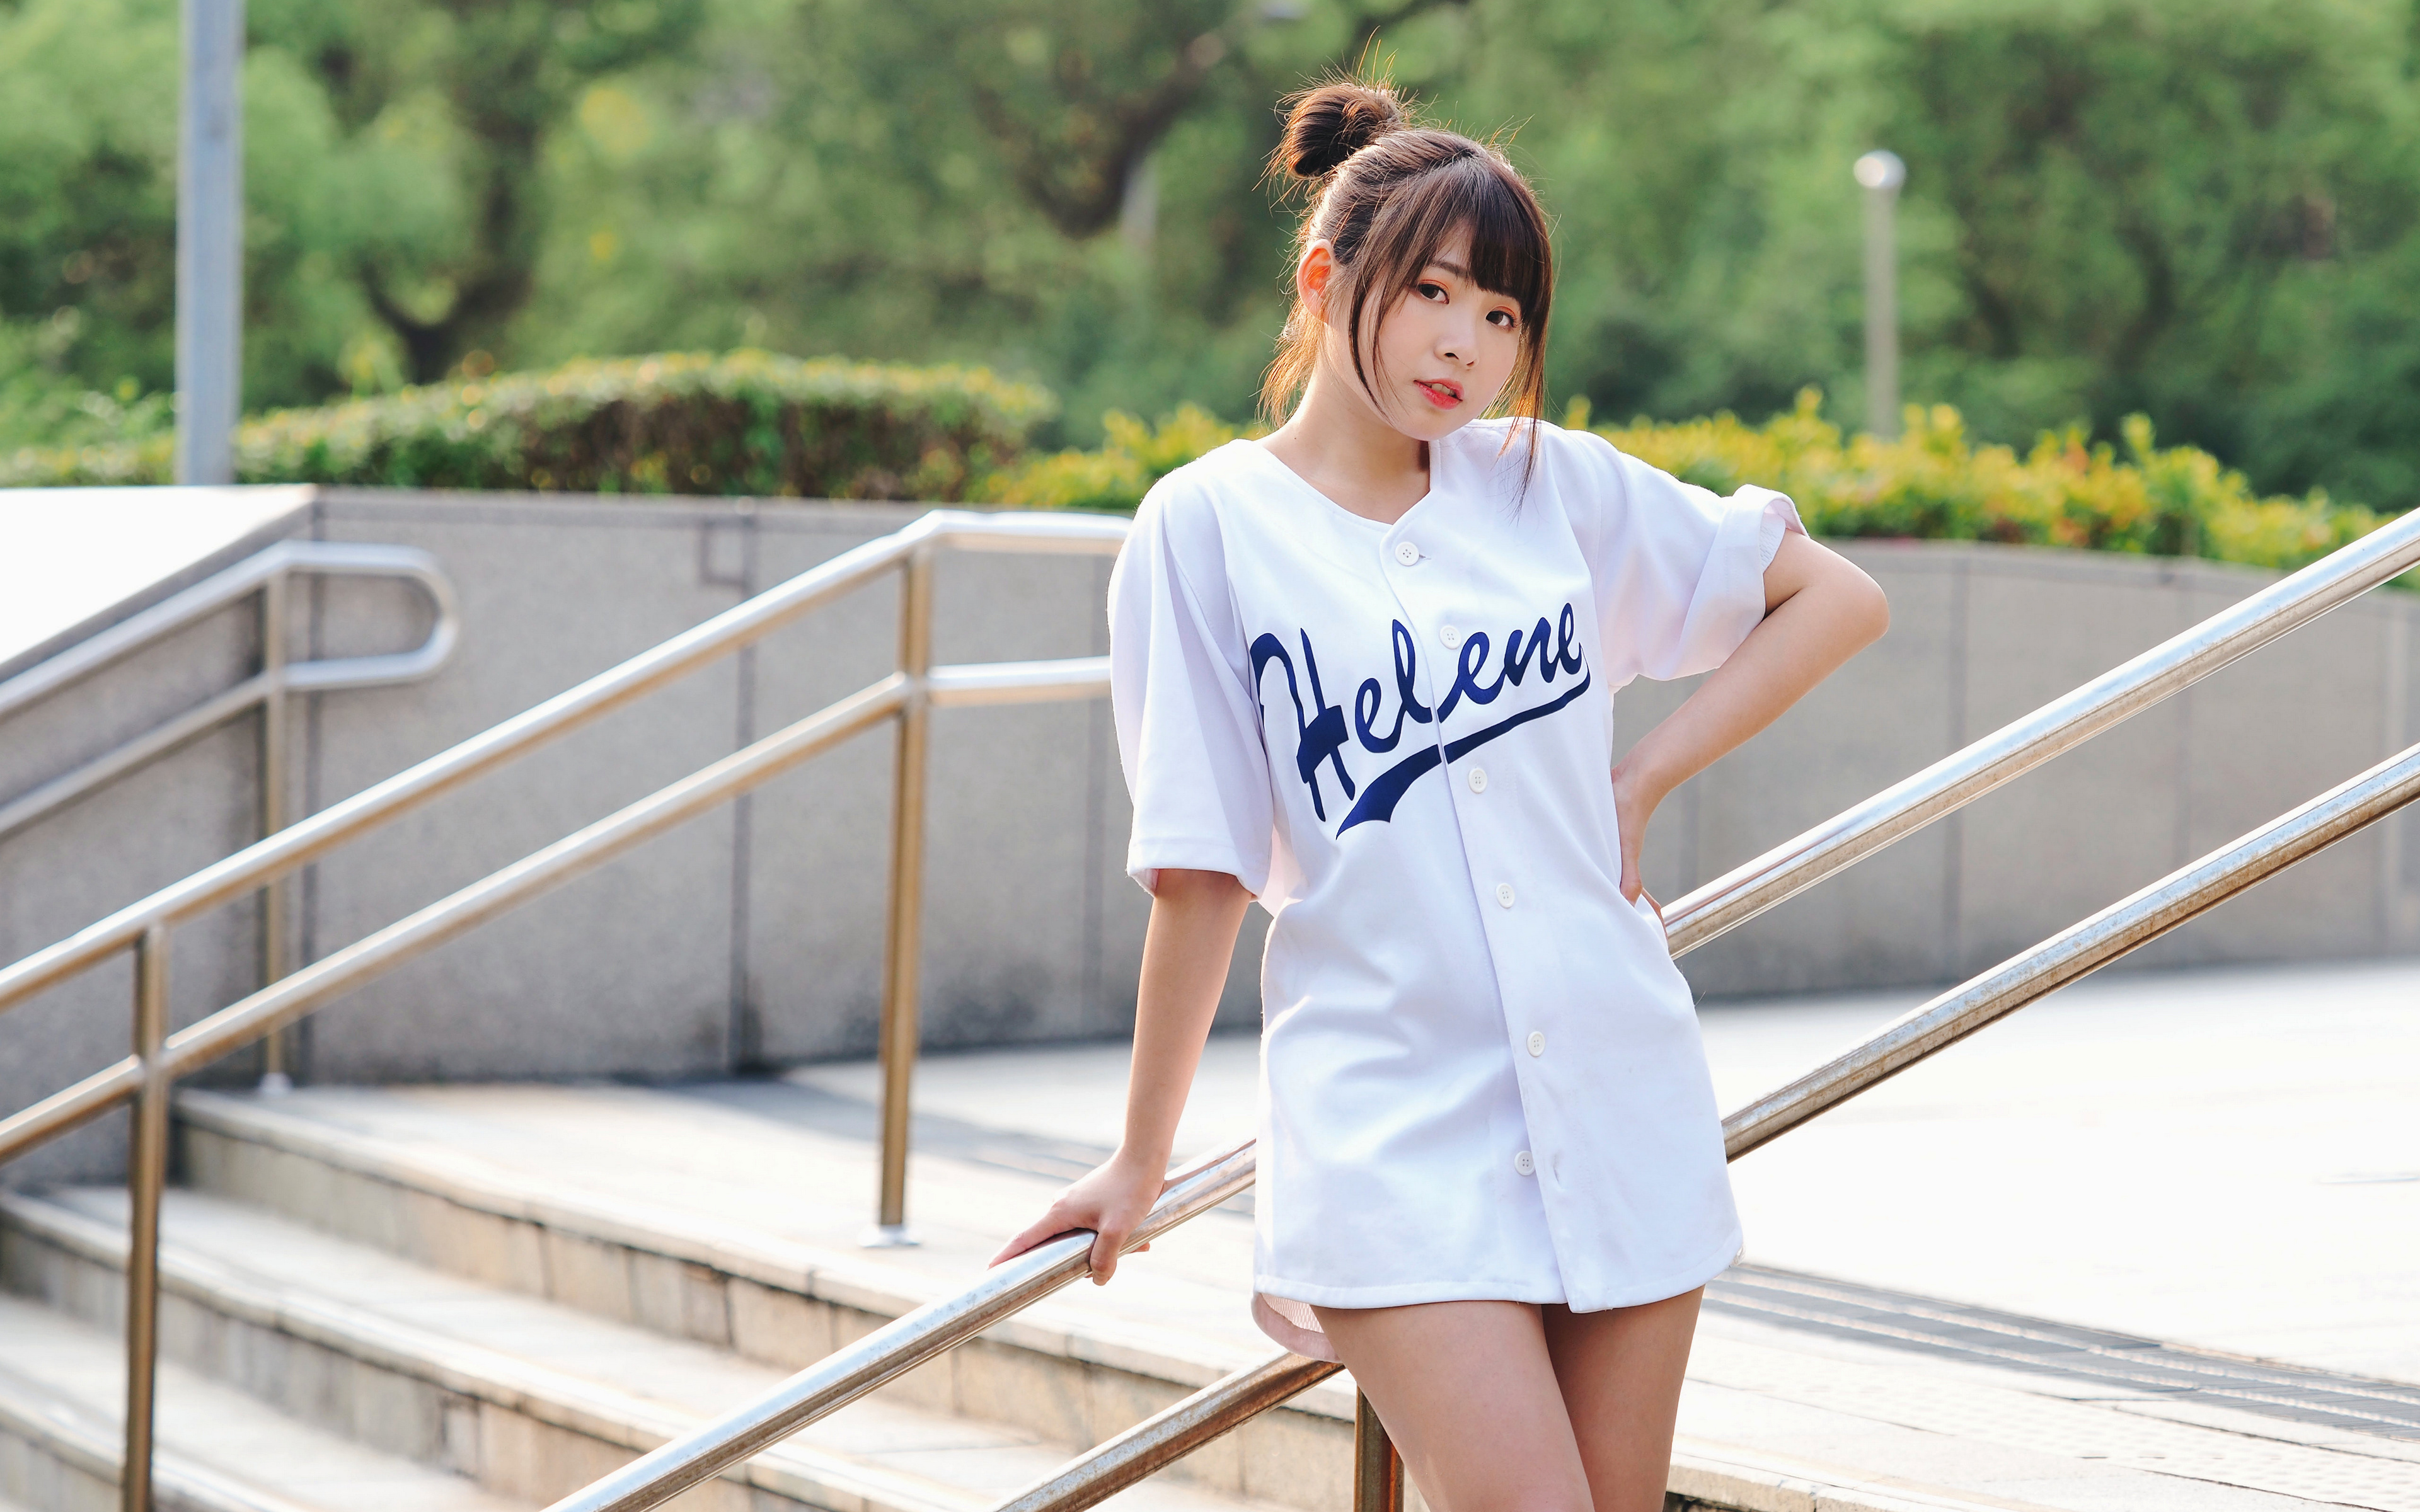 Pictures Pose Girls Asiatic Glance 3840x2400 posing female young woman Asian Staring